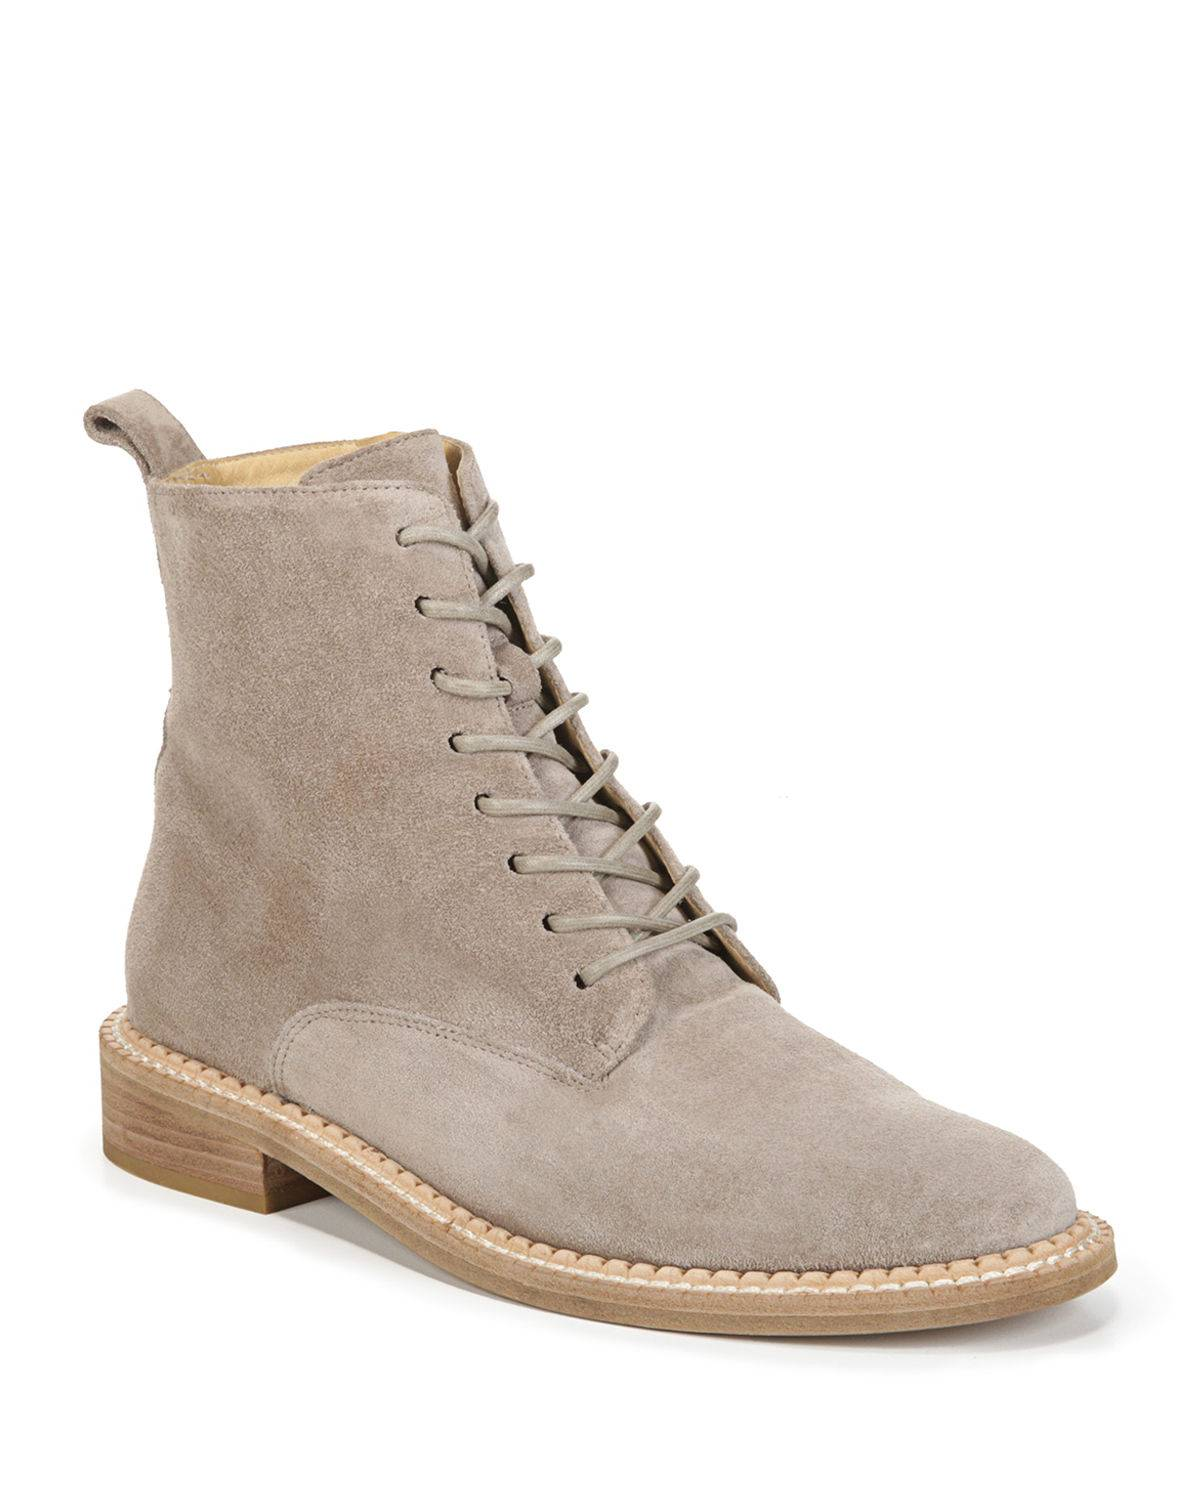 Vince Cabria Sport Suede Lace-Up Boot - Size: 10B / 40EU